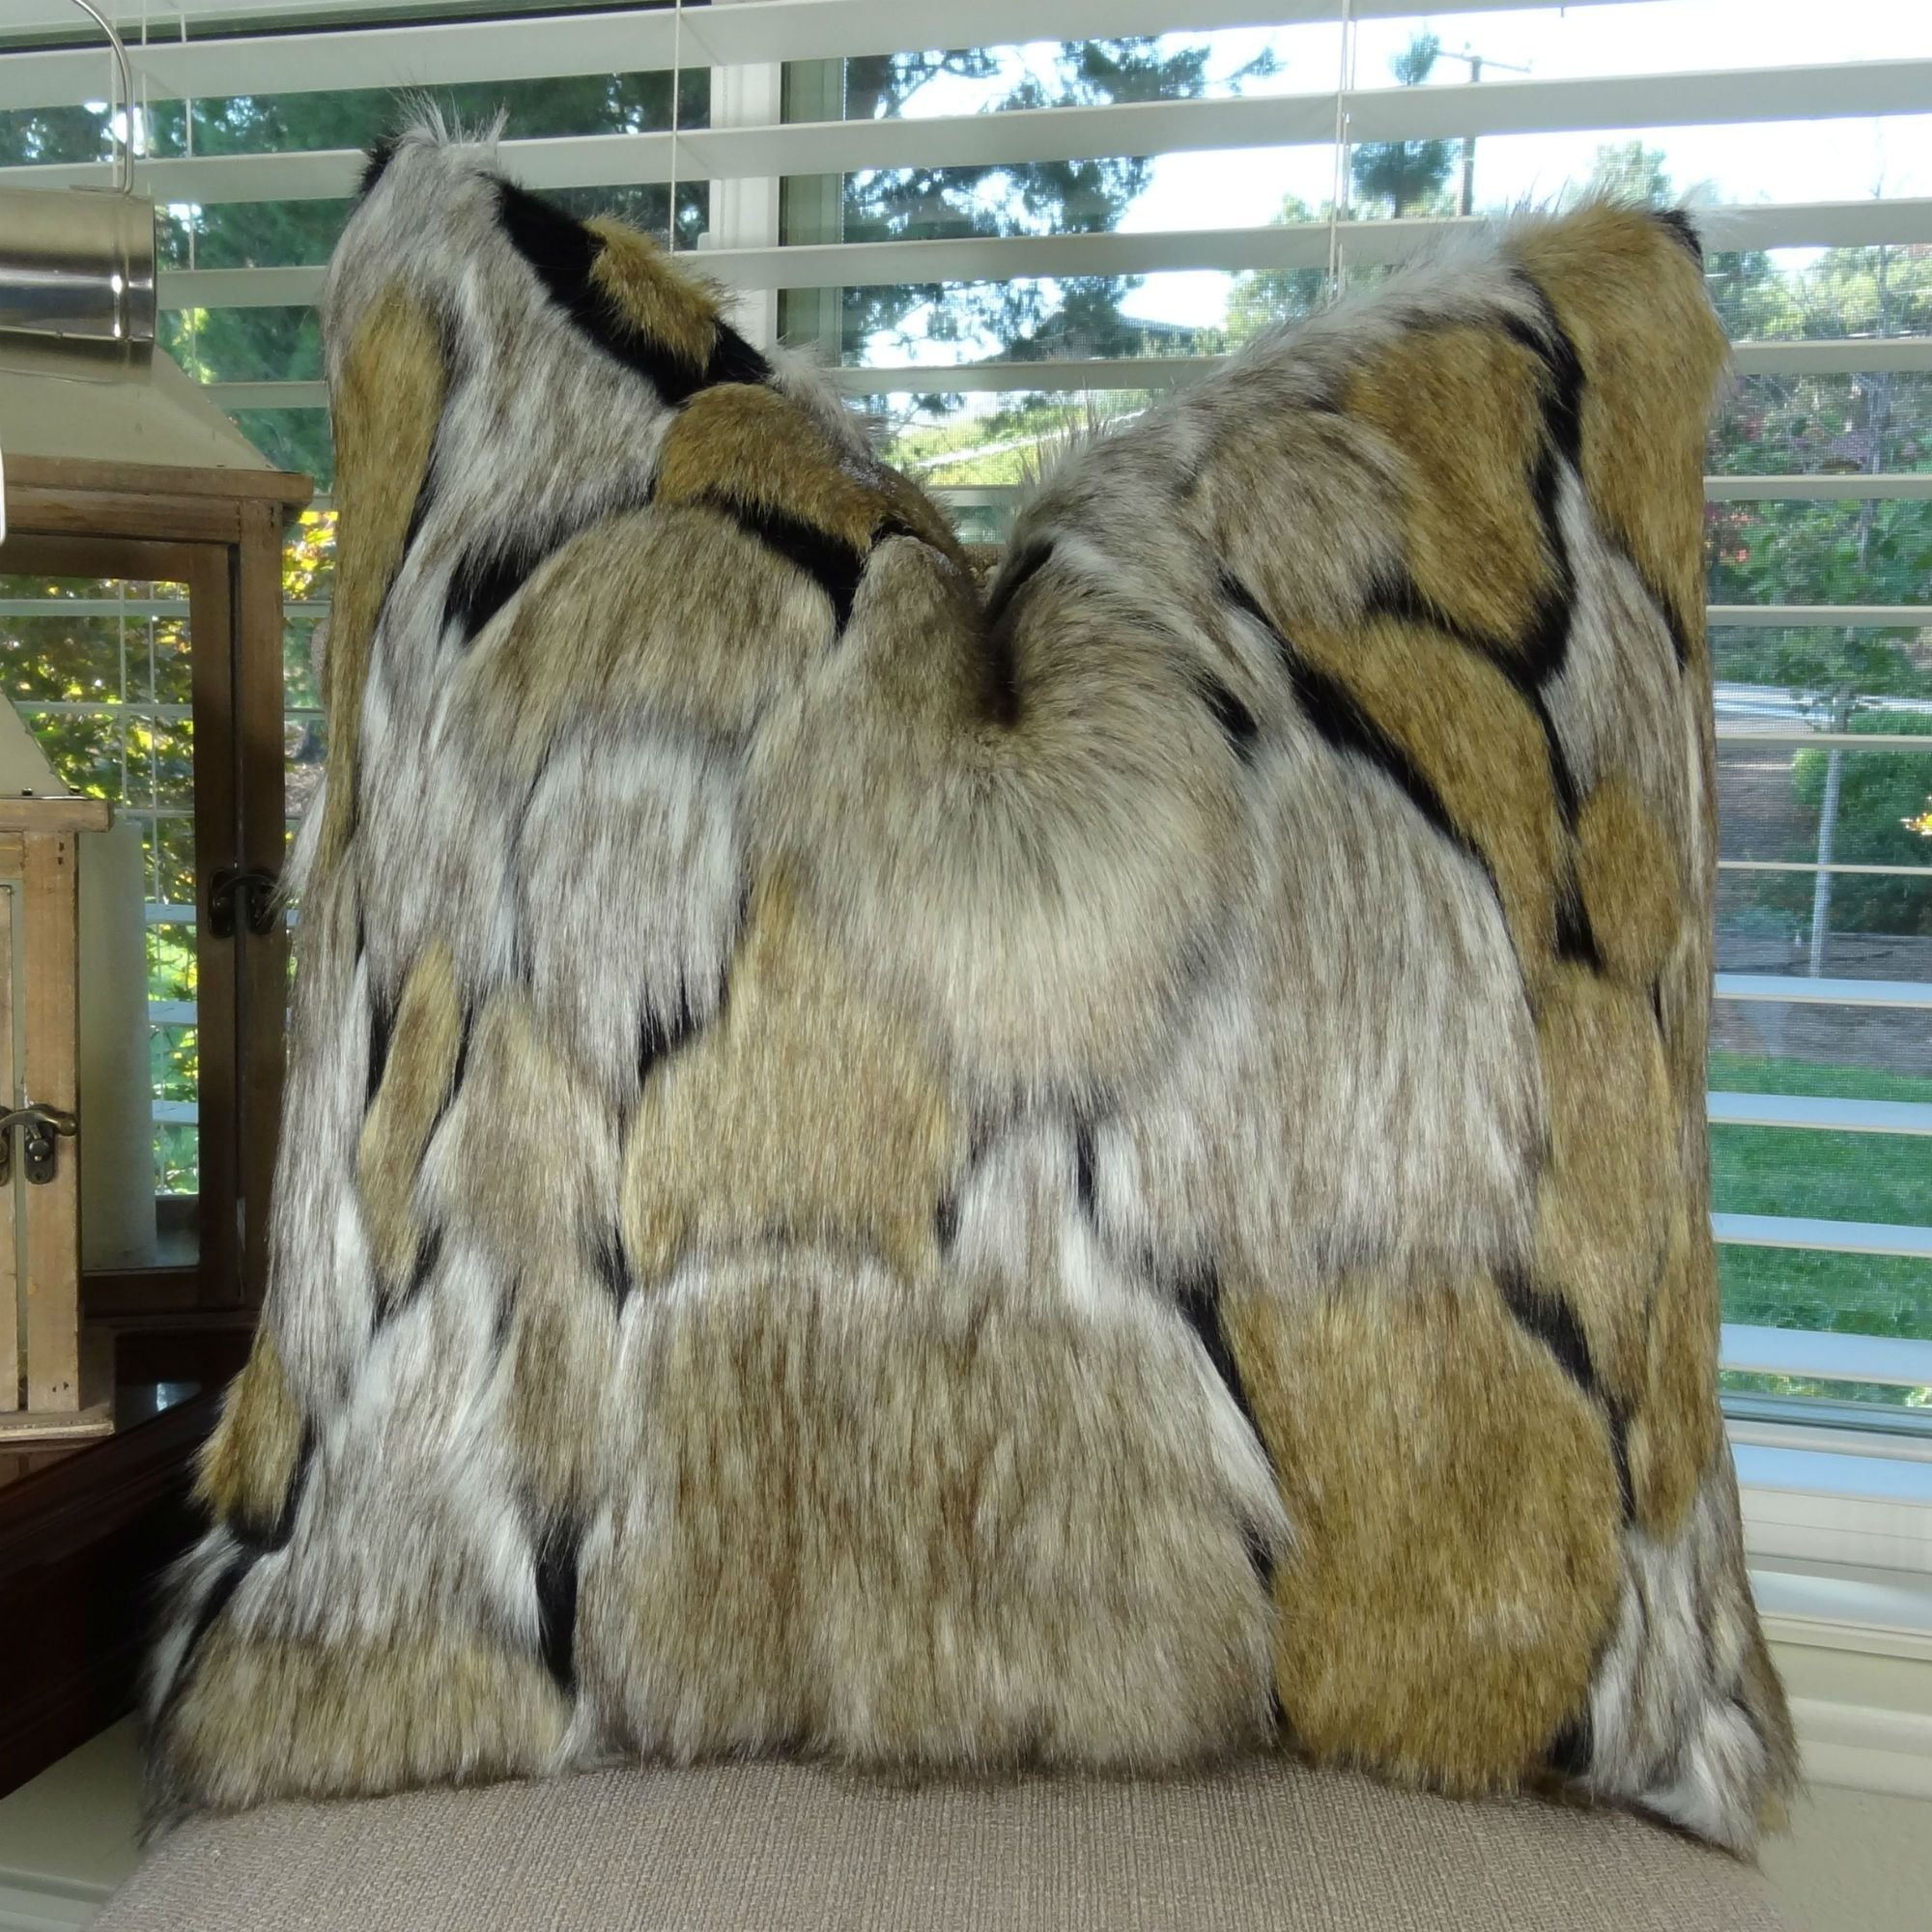 Thomas Collection Taupe Wolf Faux Fur Pillow, Luxury Taupe Black Faux Fur Accent Pillow, Super Soft Taupe Black Fur Pillow, COVER ONLY, NO INSERT, Made in America, 17484